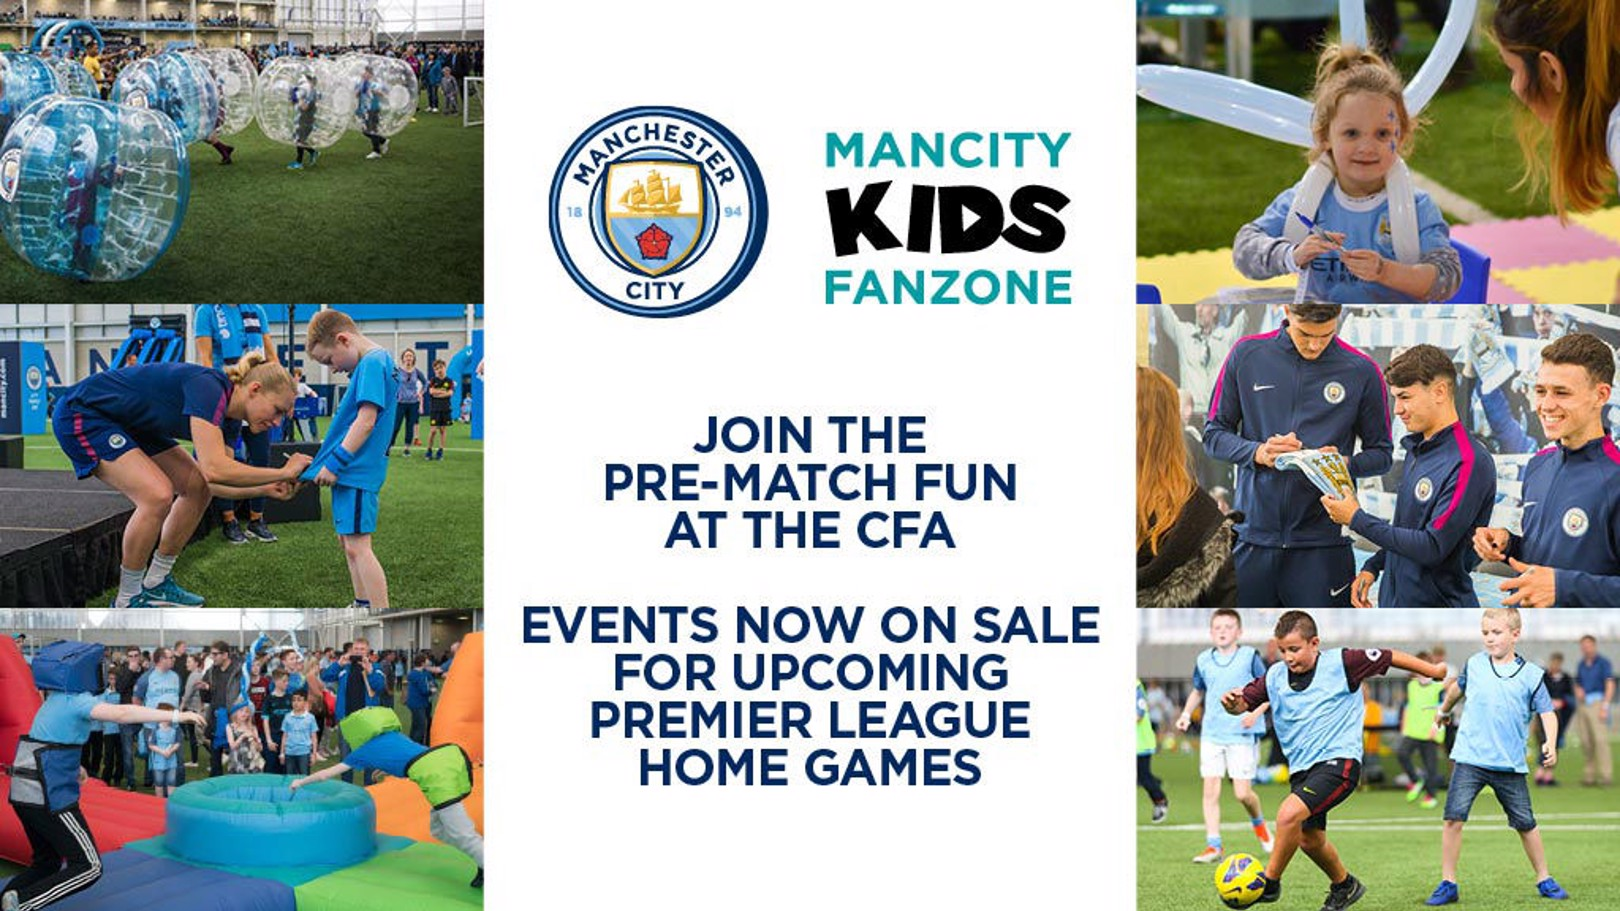 Join us at the Man City Kids Fanzone!